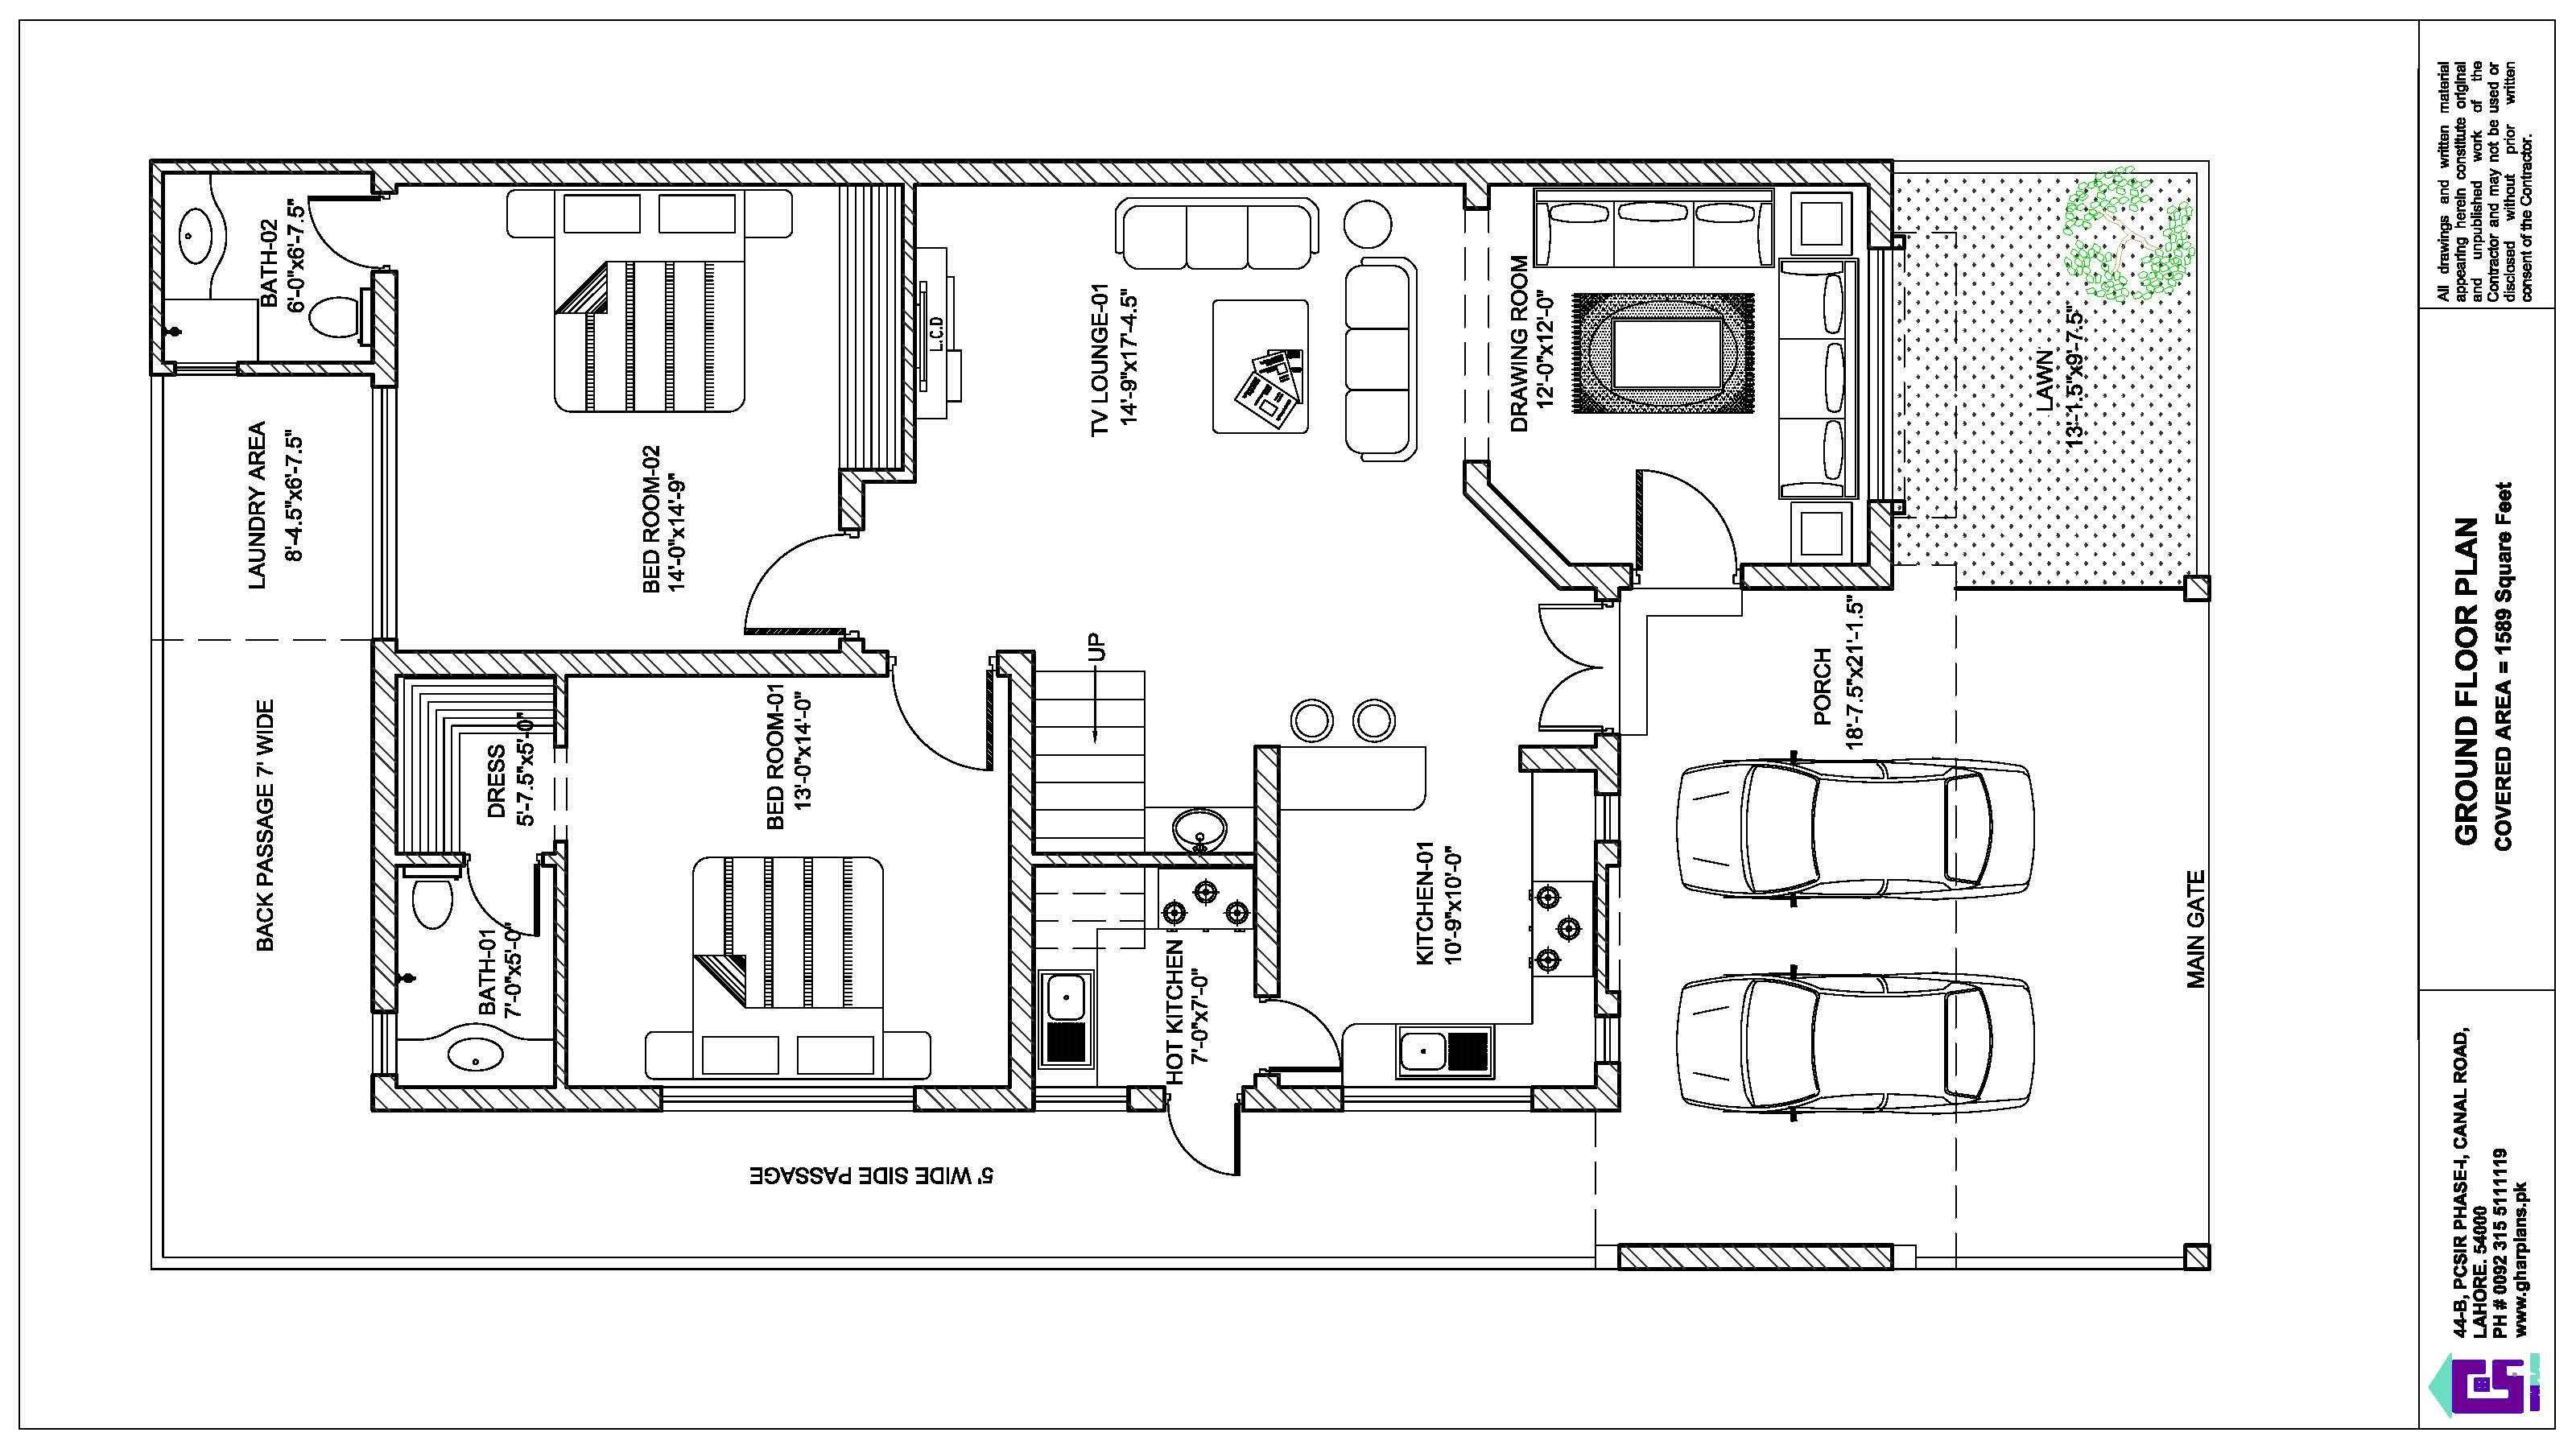 10 Marla House Ground Layout Plan House Layout Plans House Layouts 10 Marla House Plan